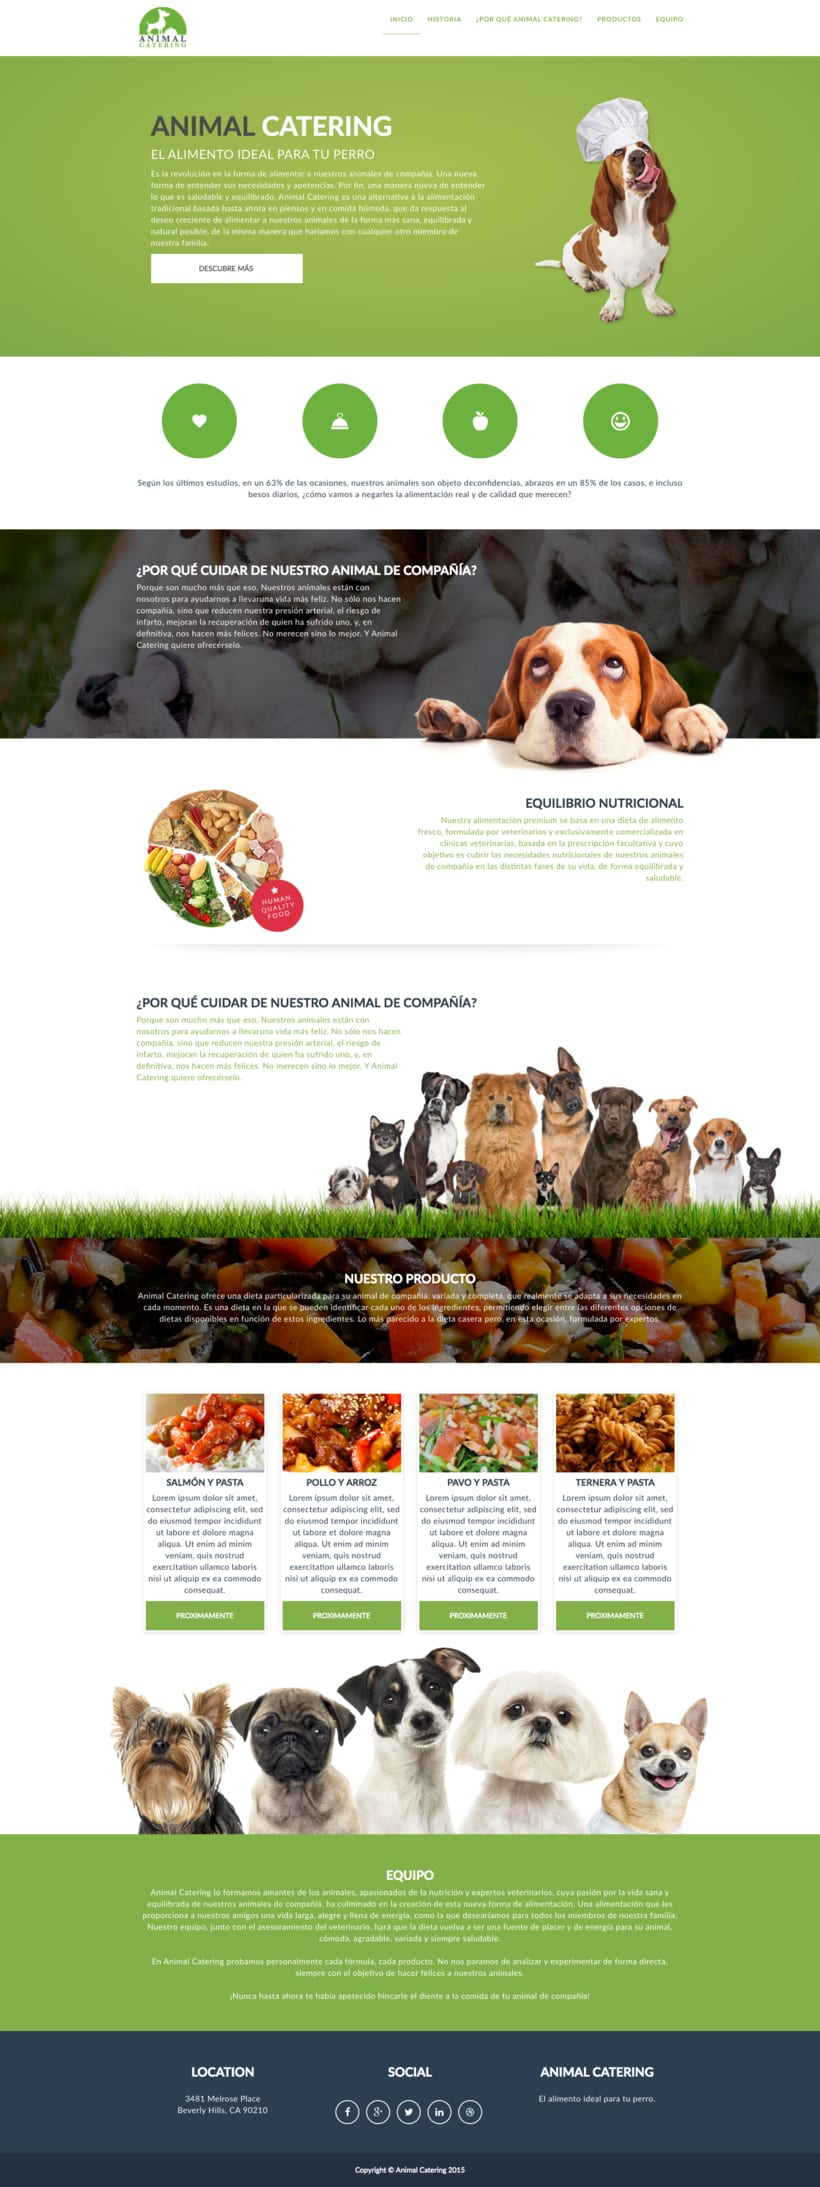 Microsite Animal Catering -1